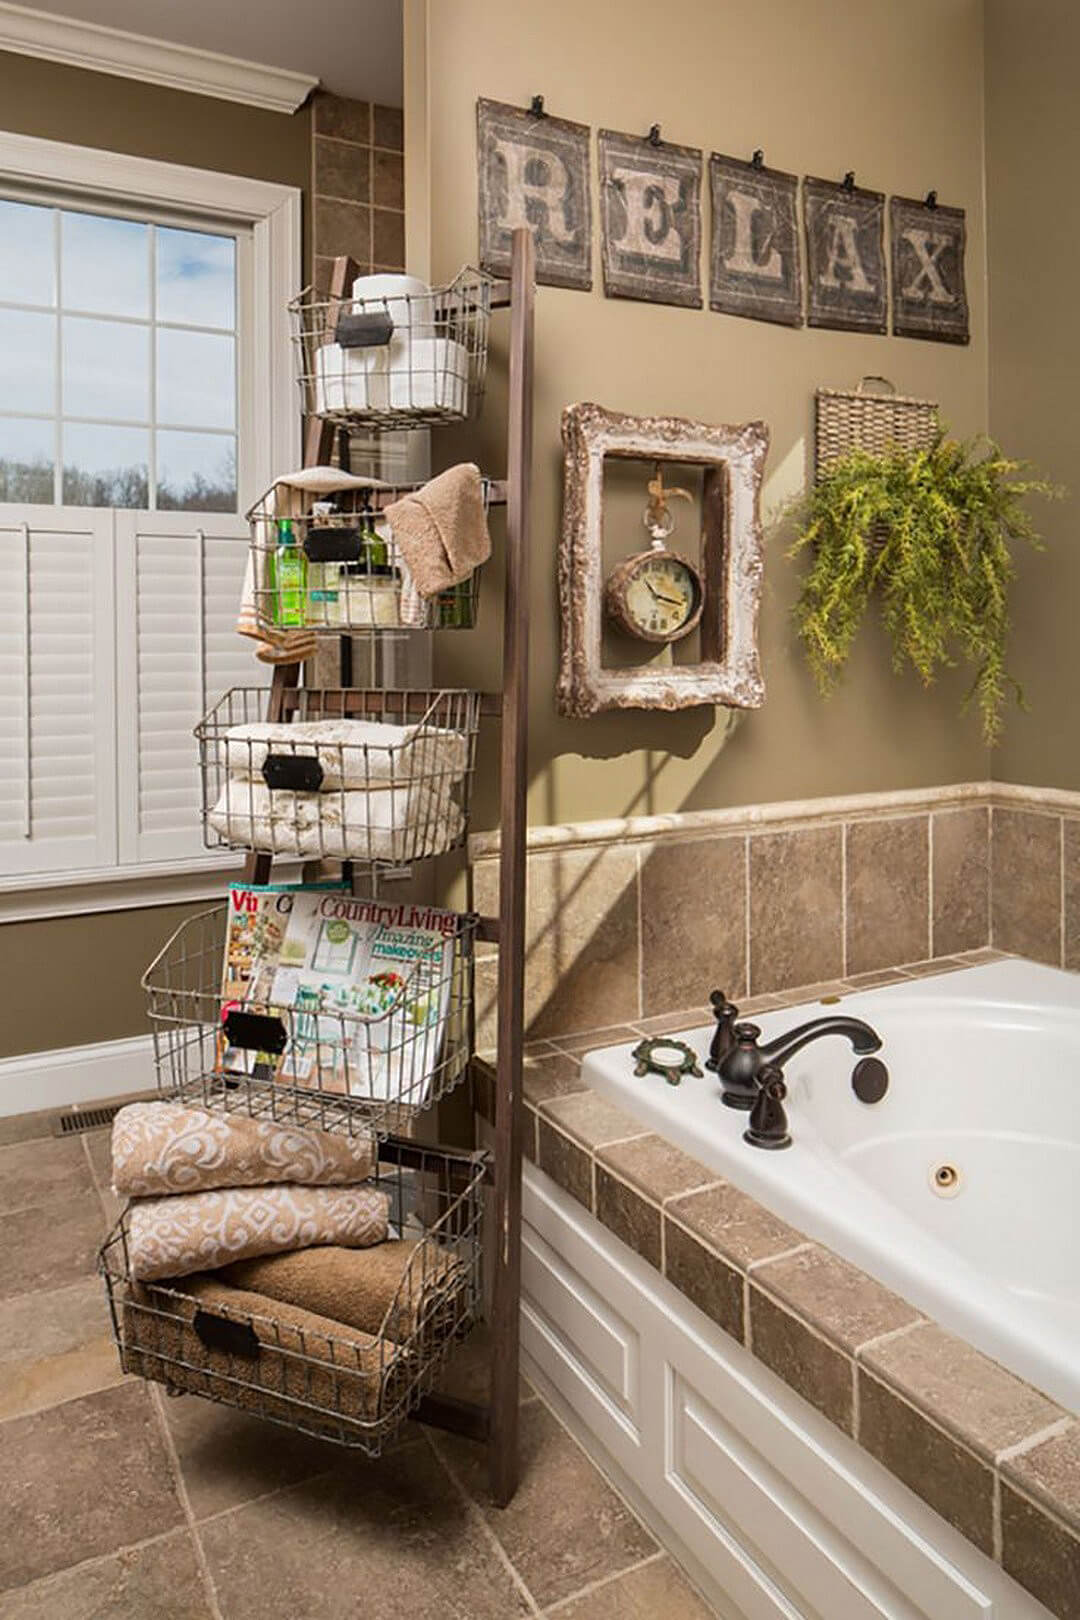 newsstand style towel toiletries rack - Towel Storage